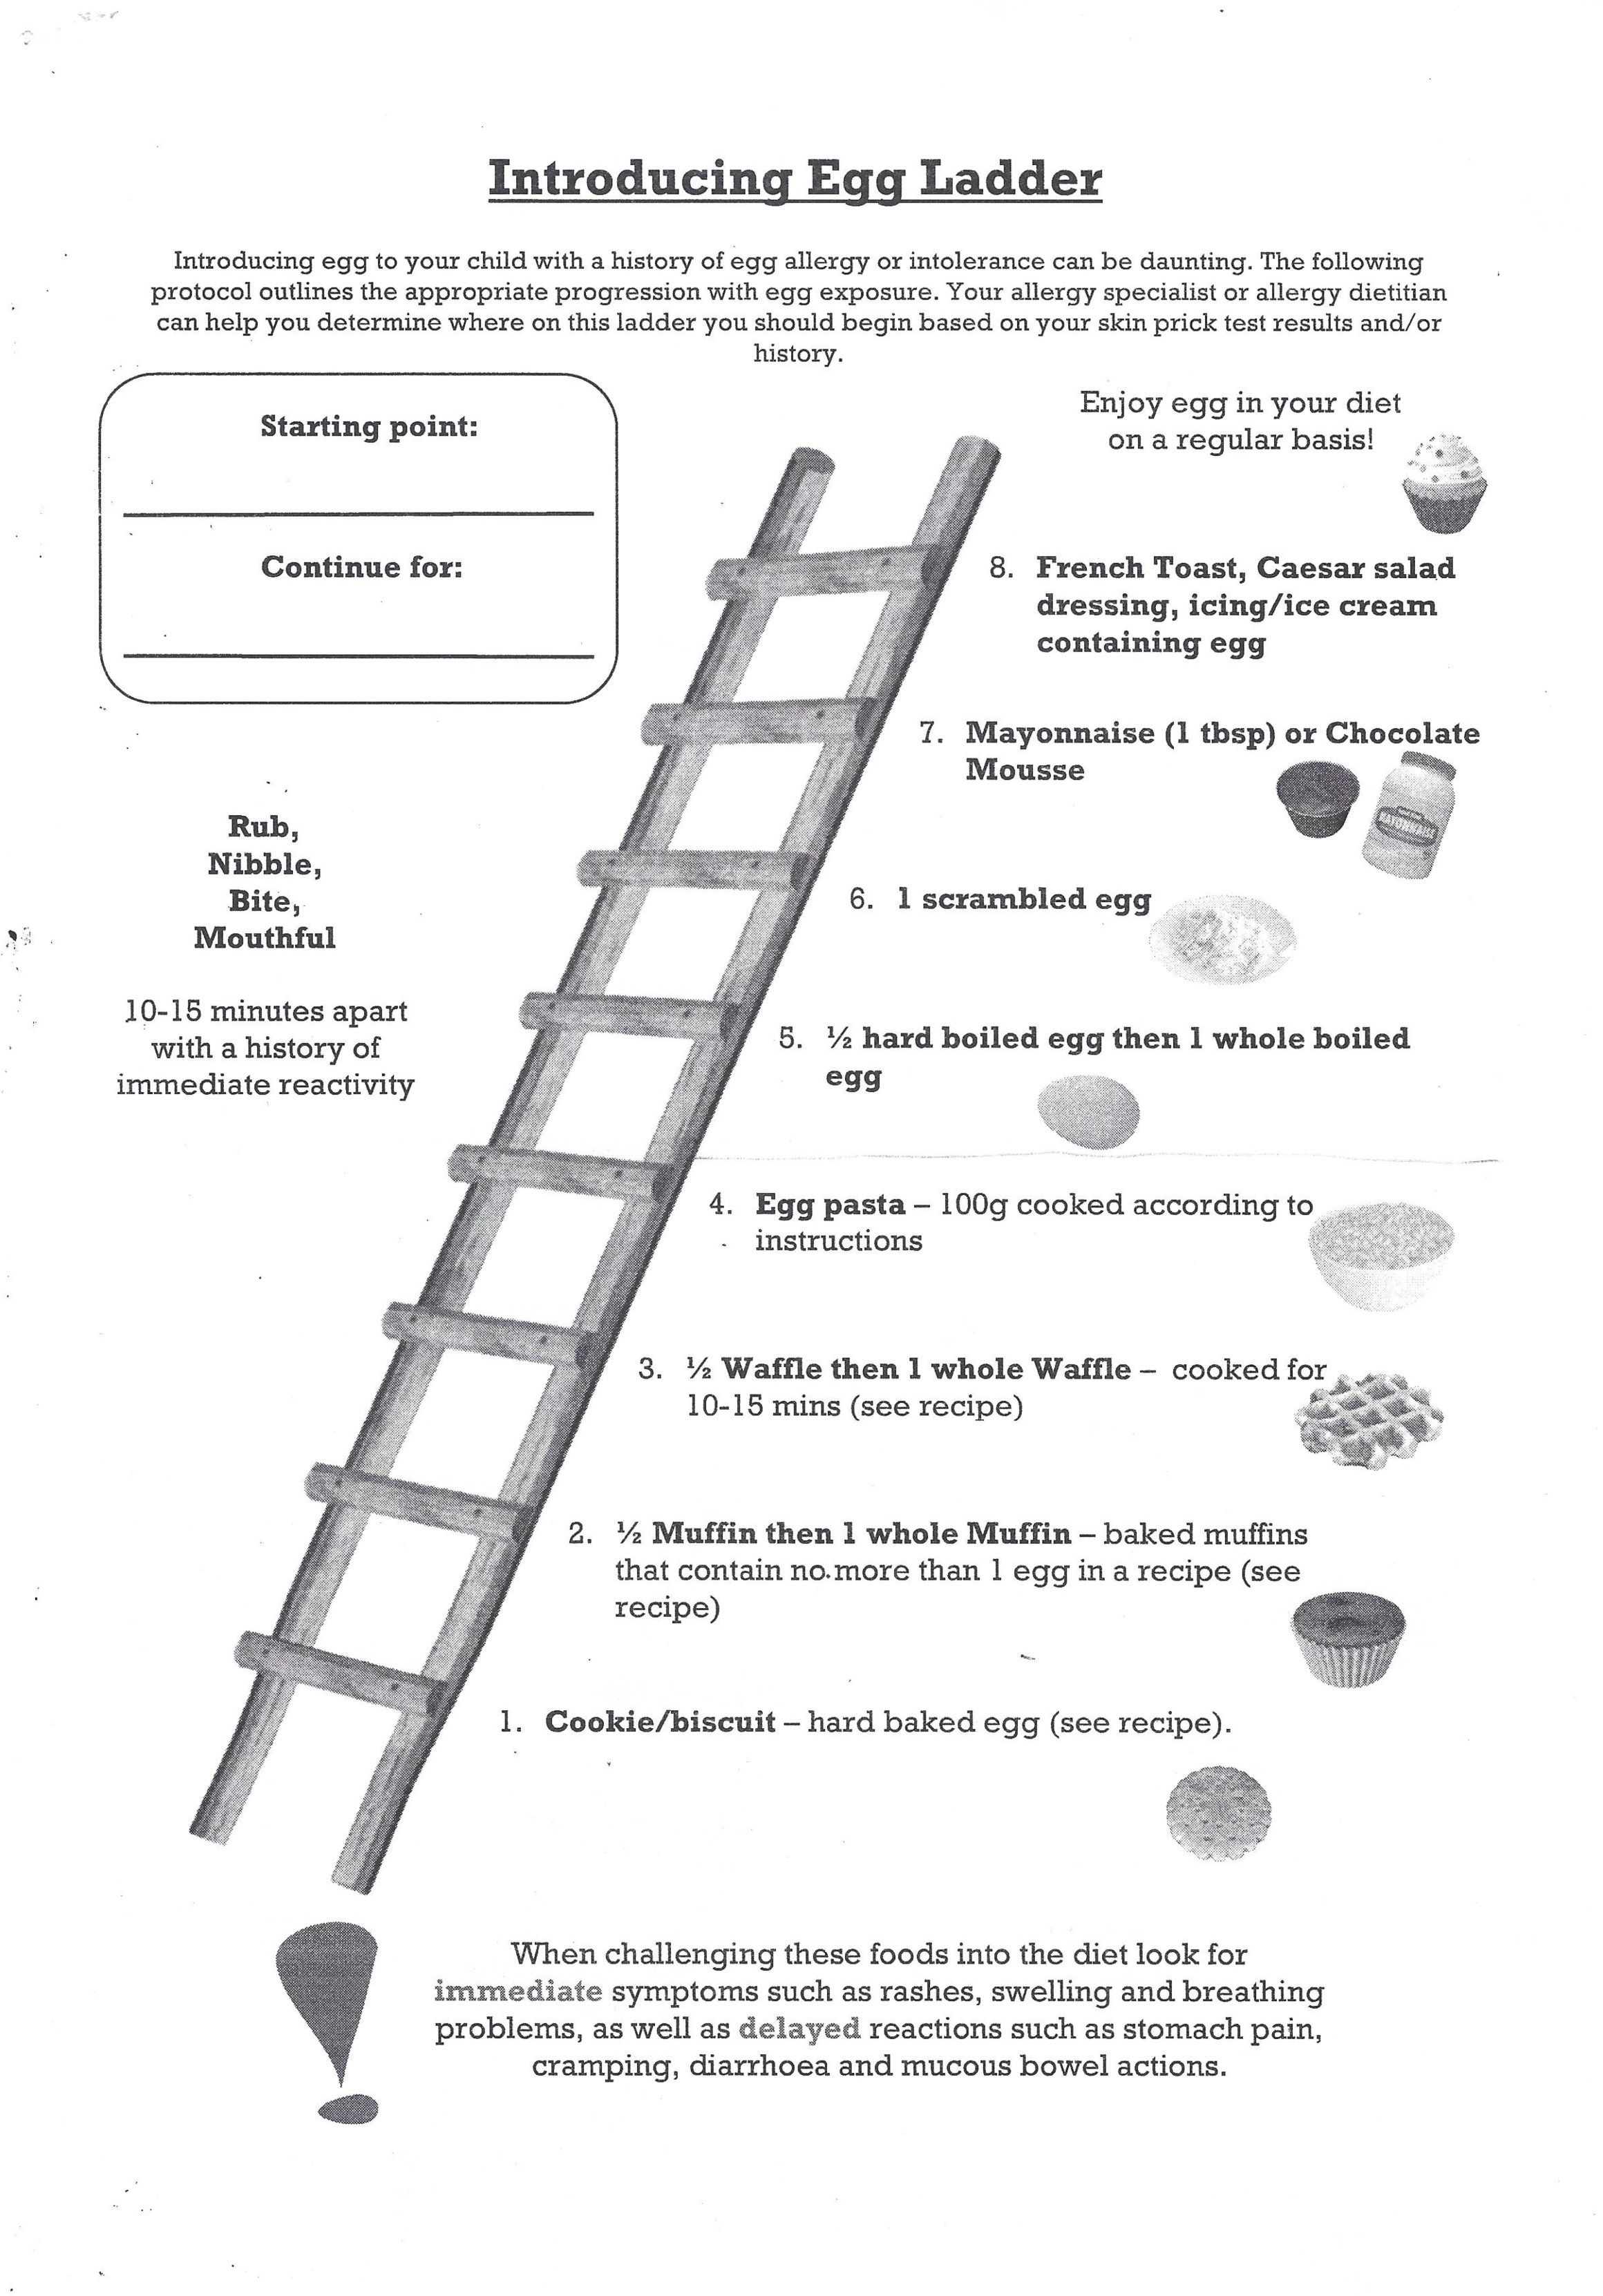 Introducing Egg Ladder History Of Egg Allergy Follow The Ladder Of Appropriate Progression Of Egg Exposure Baked Eggs How To Cook Eggs Egg Allergy